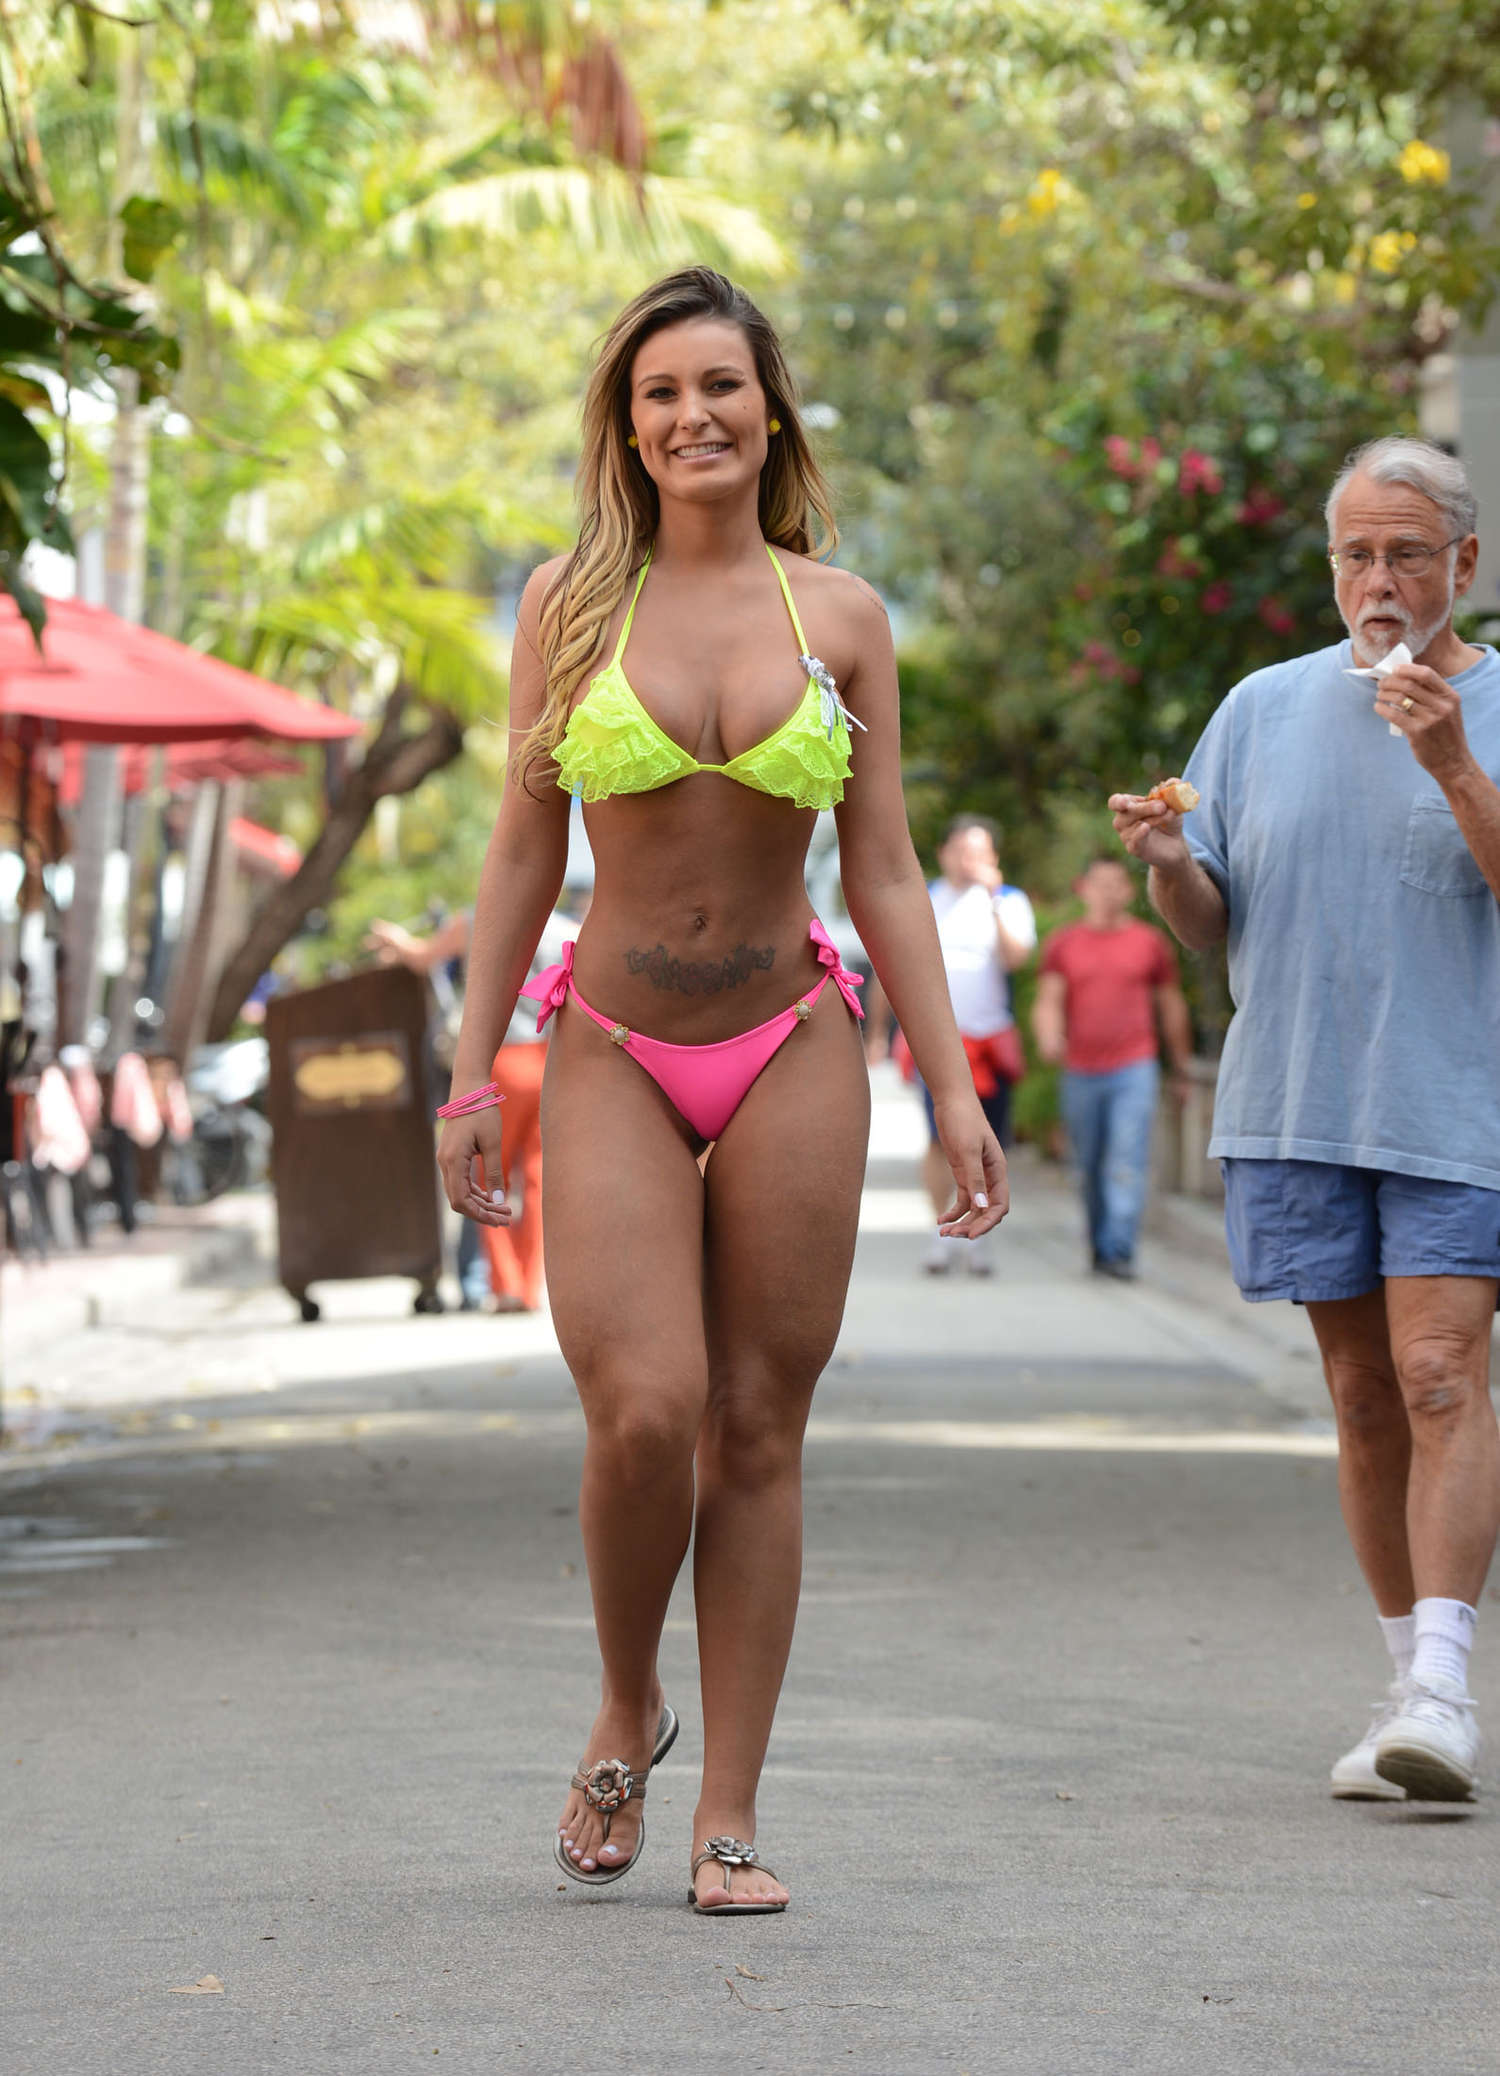 Cleavage Andressa Urach nudes (95 foto and video), Sexy, Cleavage, Boobs, butt 2015